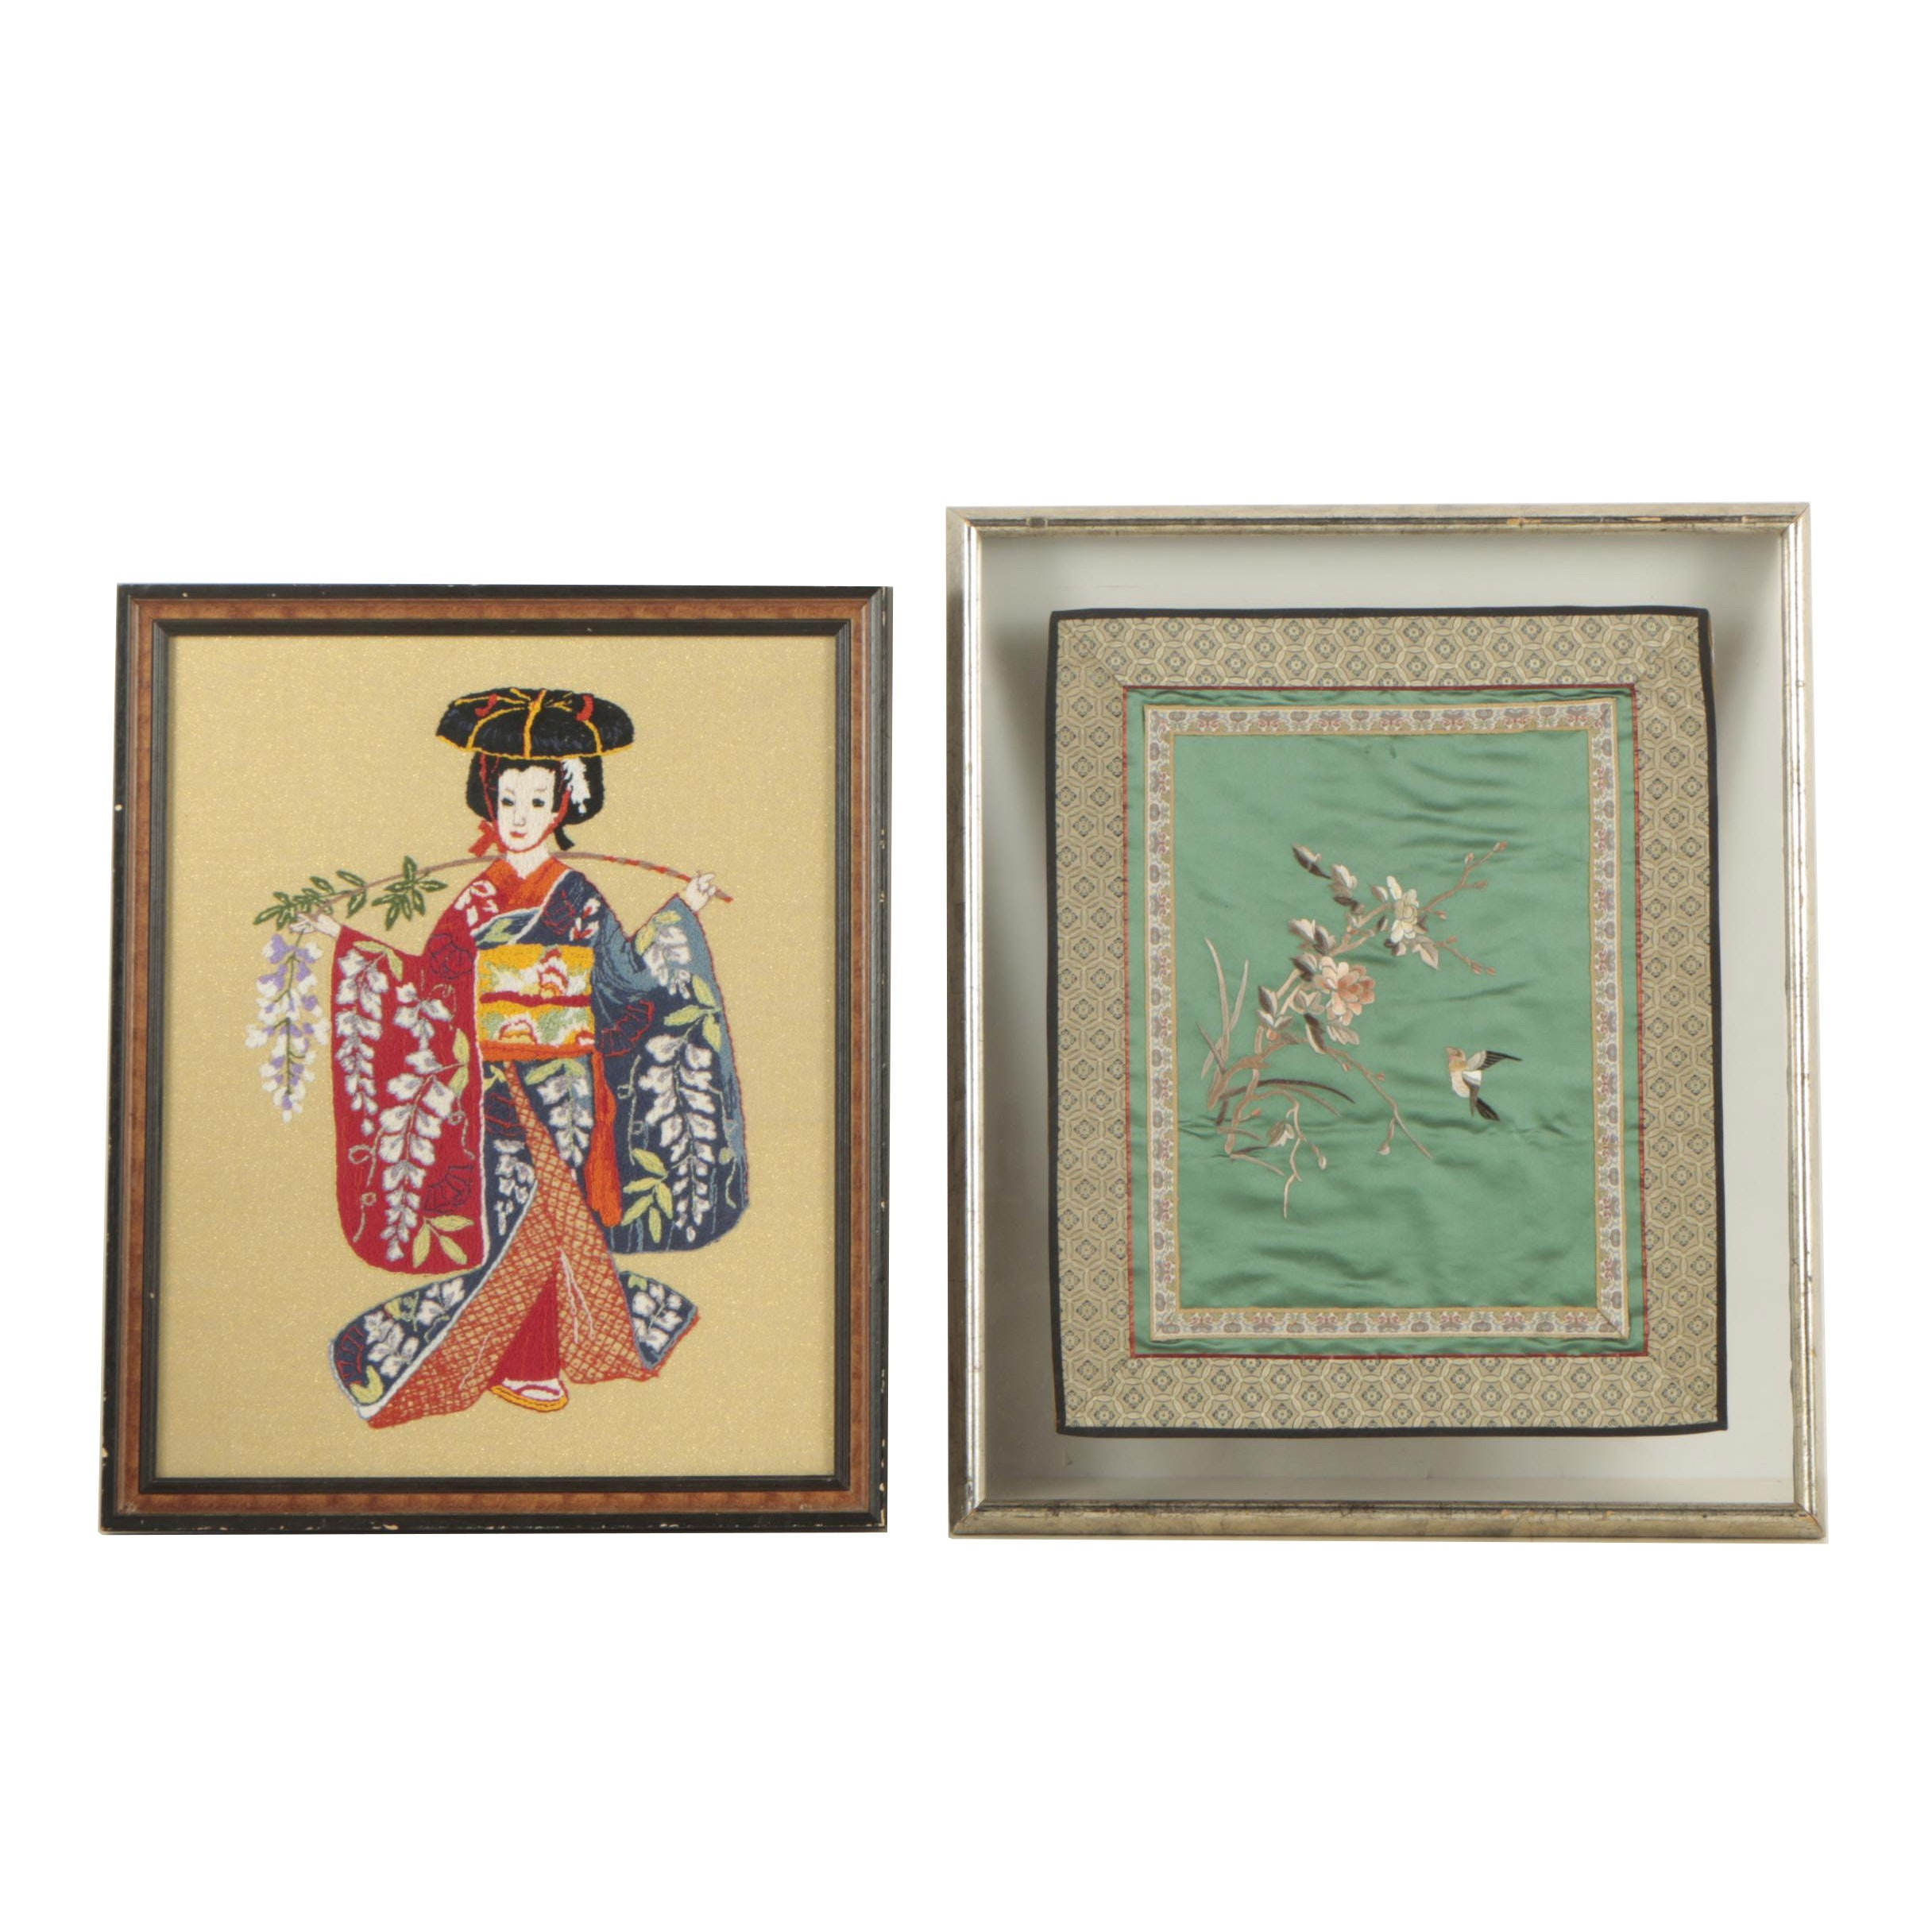 Japanese Inspired Needlepoint and Chinese Embroidery